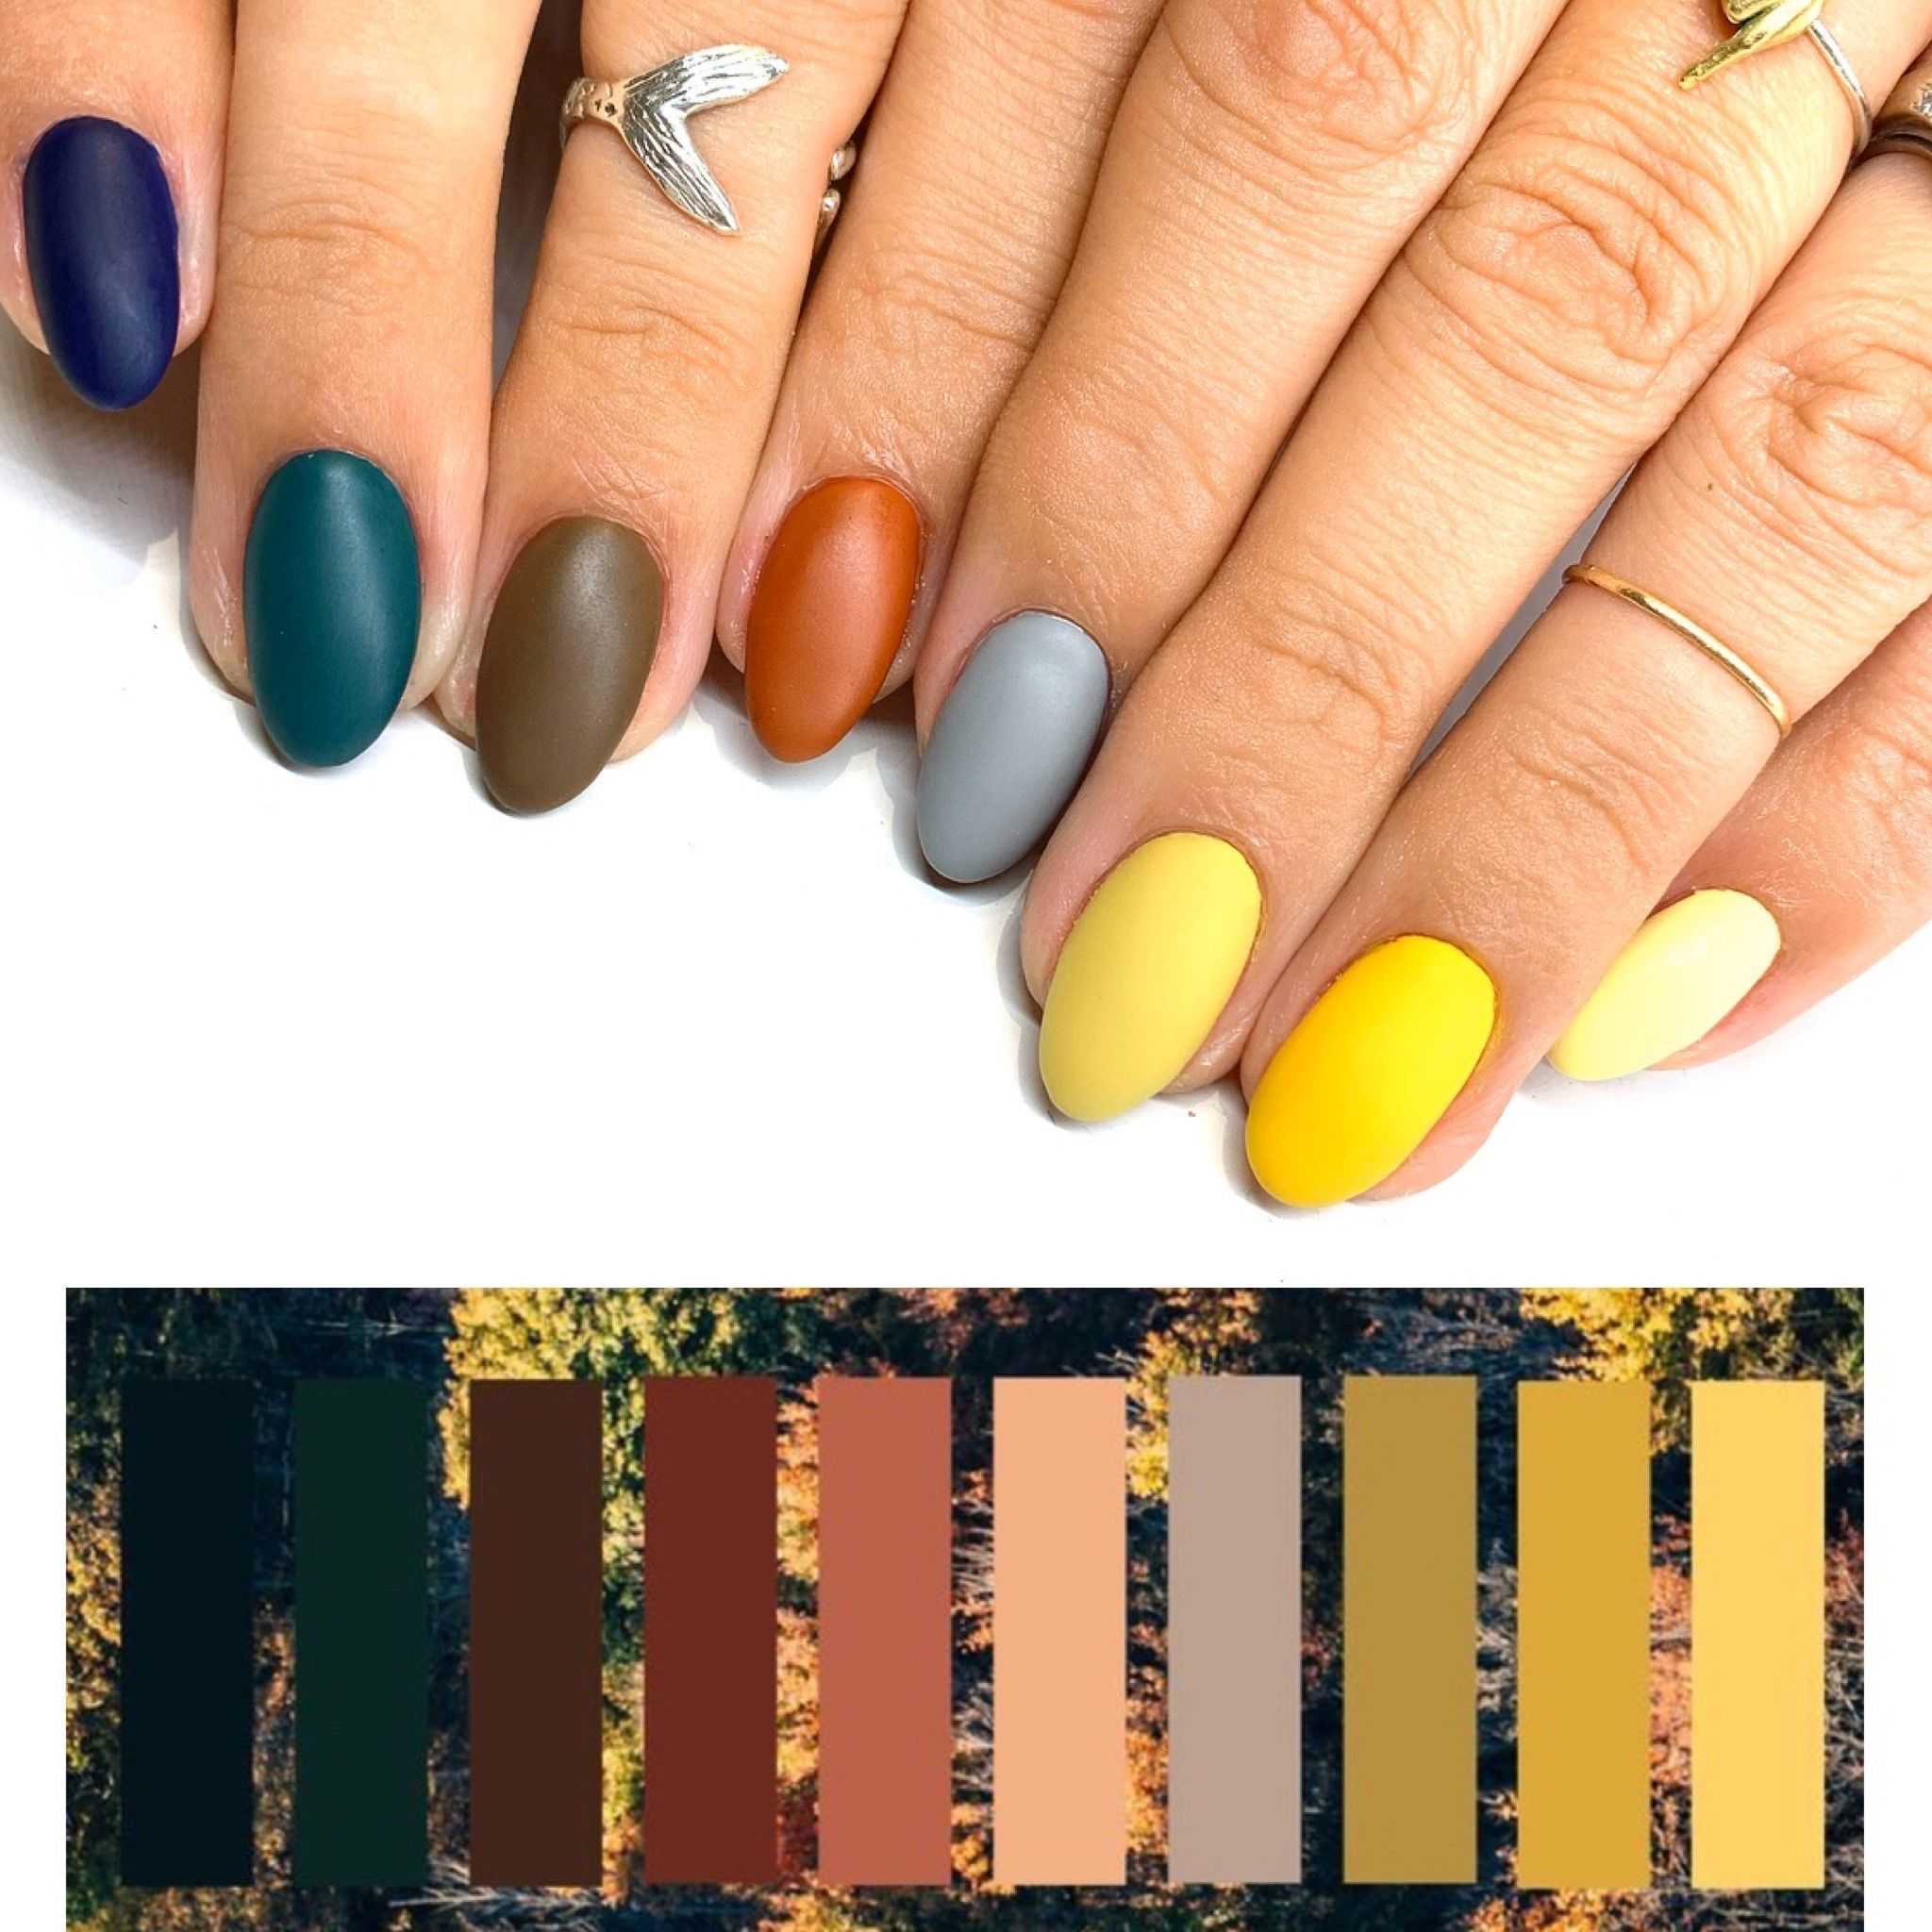 A Matte Fall Color Scheme Manicure These Matte Colors Look So Amazing Together And The Most Fall A Manicure Can Ge Best Nail Salon Nails Fall Nail Art Designs